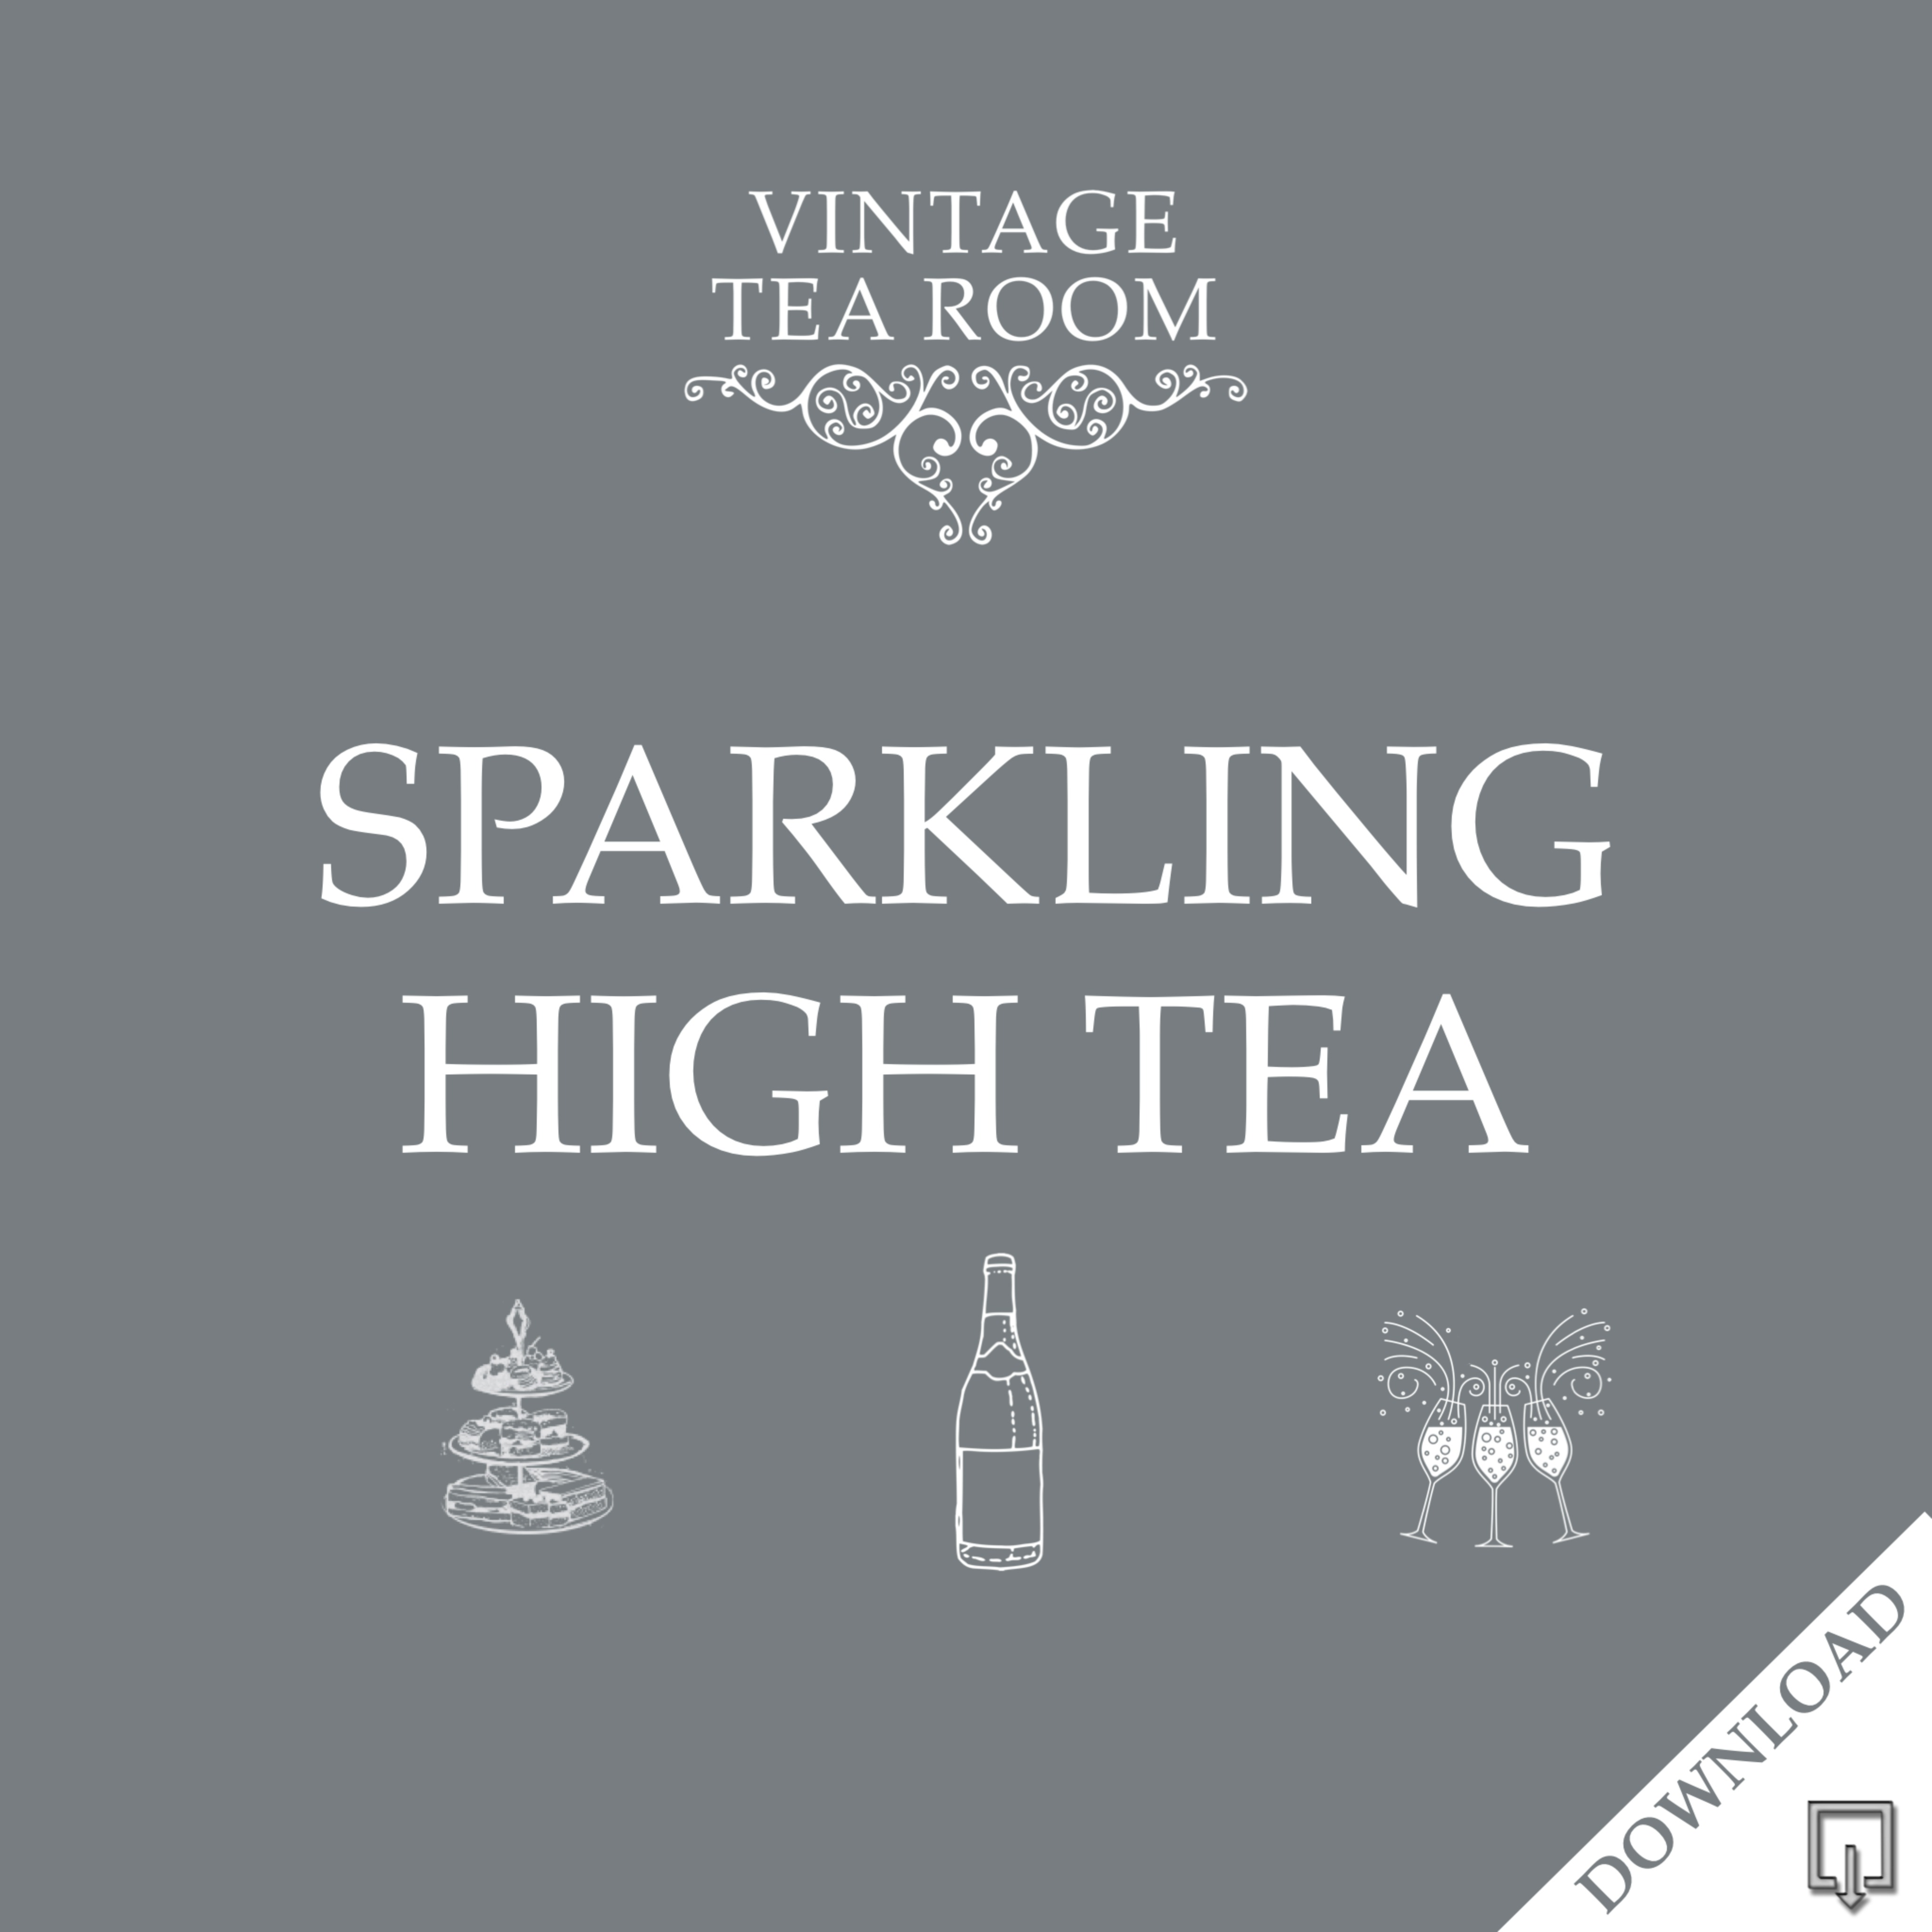 Vintage Sparkling High Tea For Two - Downloadable Voucher